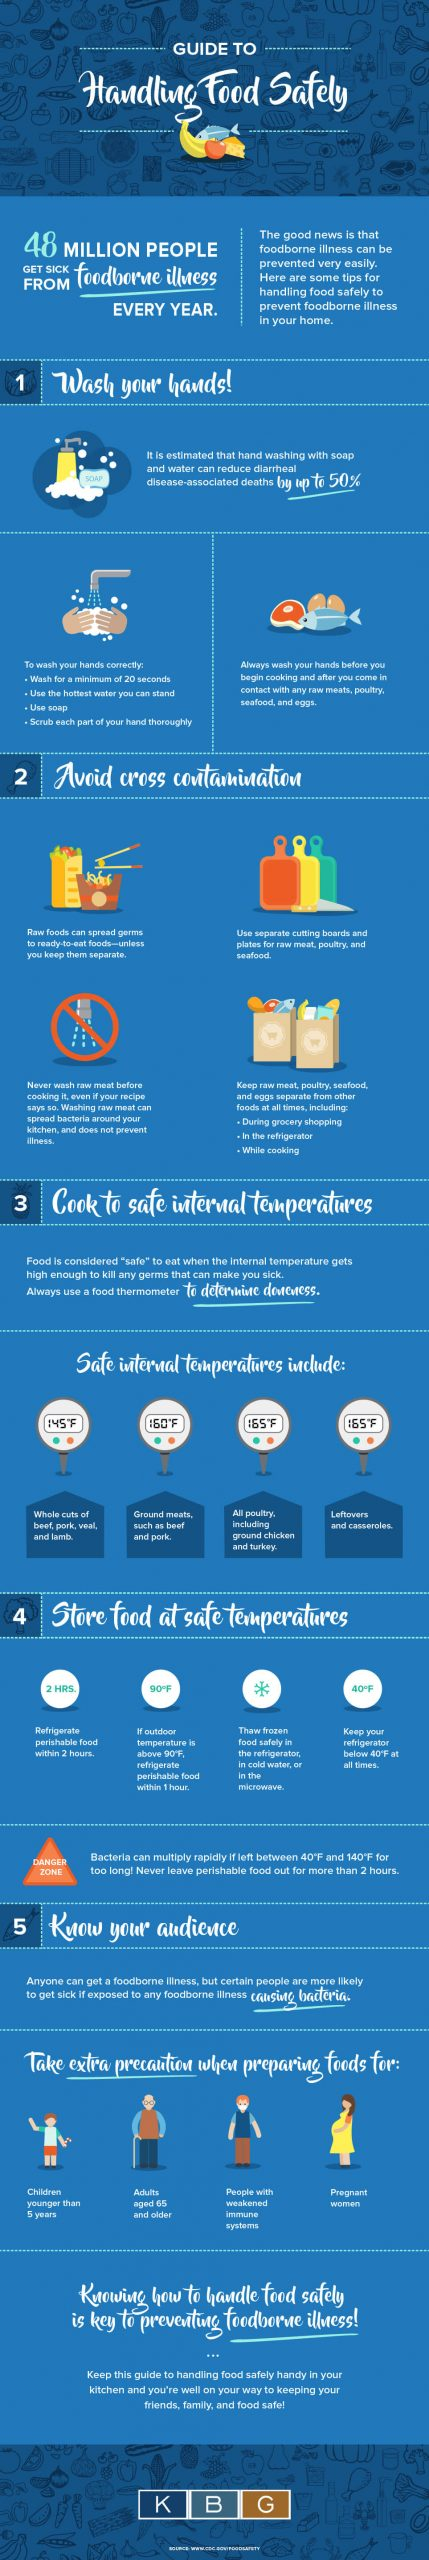 Guide to Food Handling Safety [Infographic]